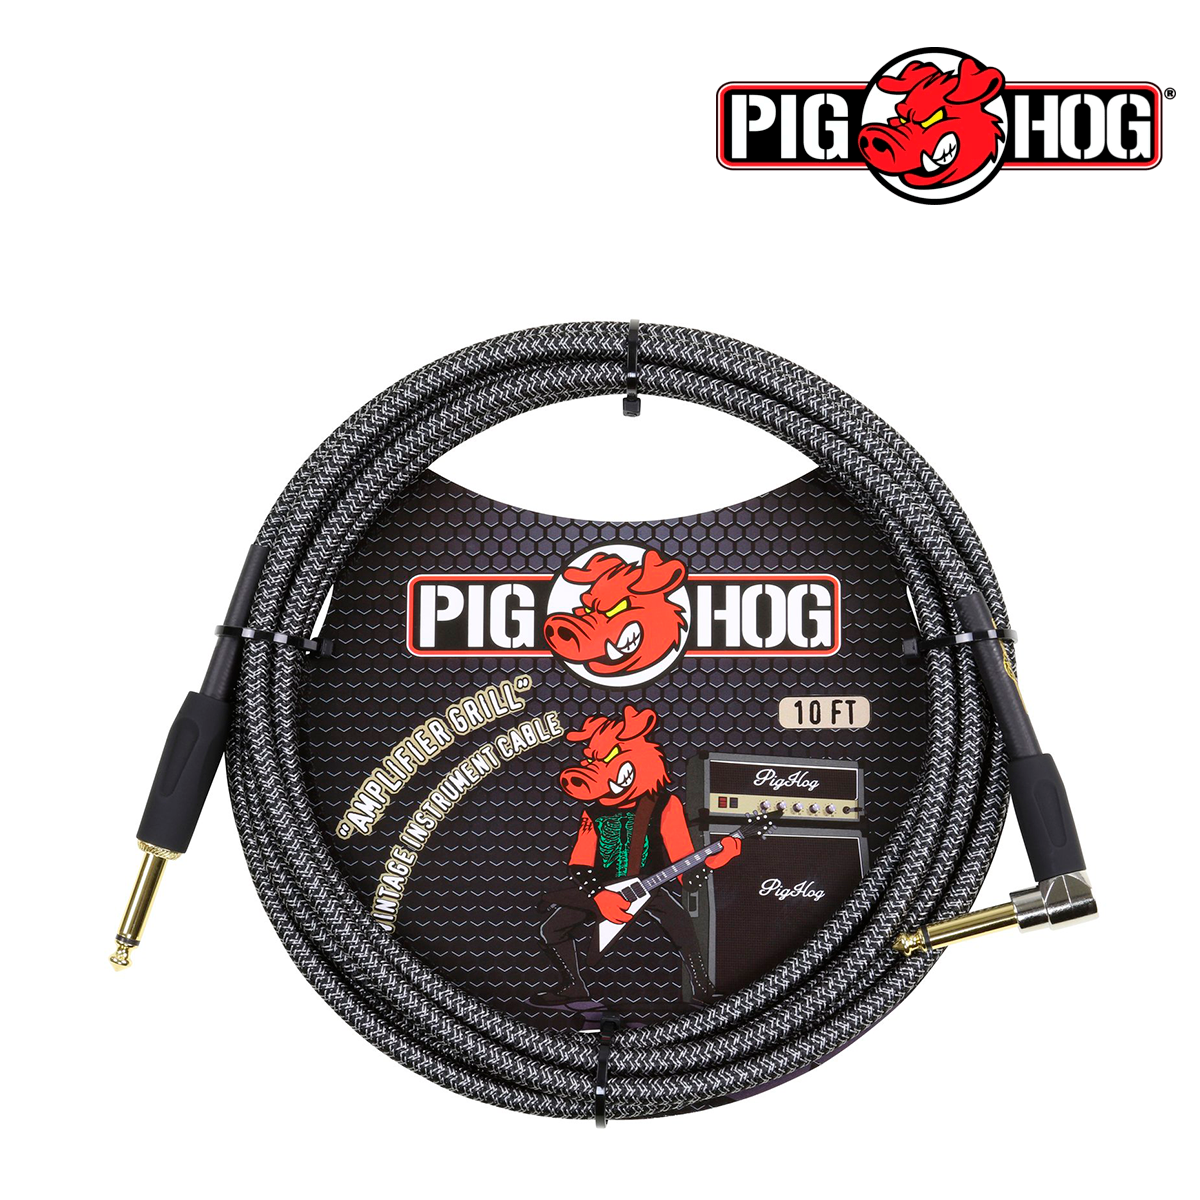 "CABLE P/INST AMPLIFIER GRILL 3.05 MT 1/4""-1/4"" ANG RECTO PIGHOG"